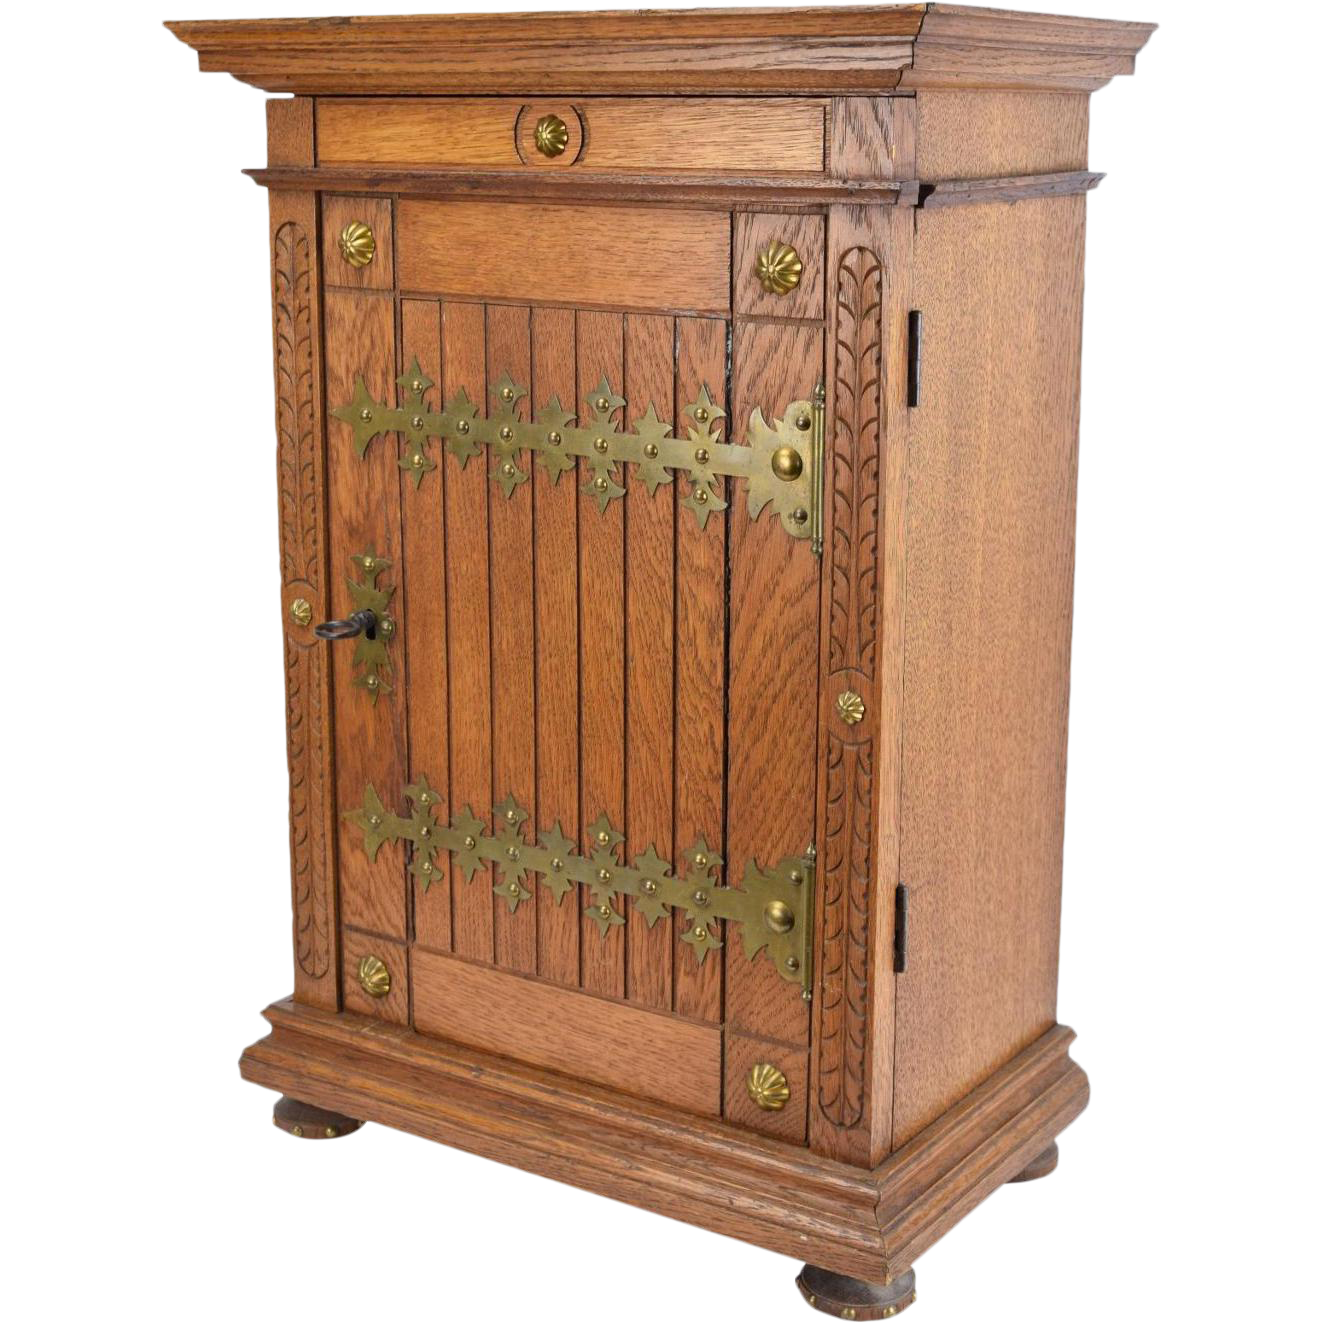 Marvelous Gothic Revival Oak Locking Wall Cabinet